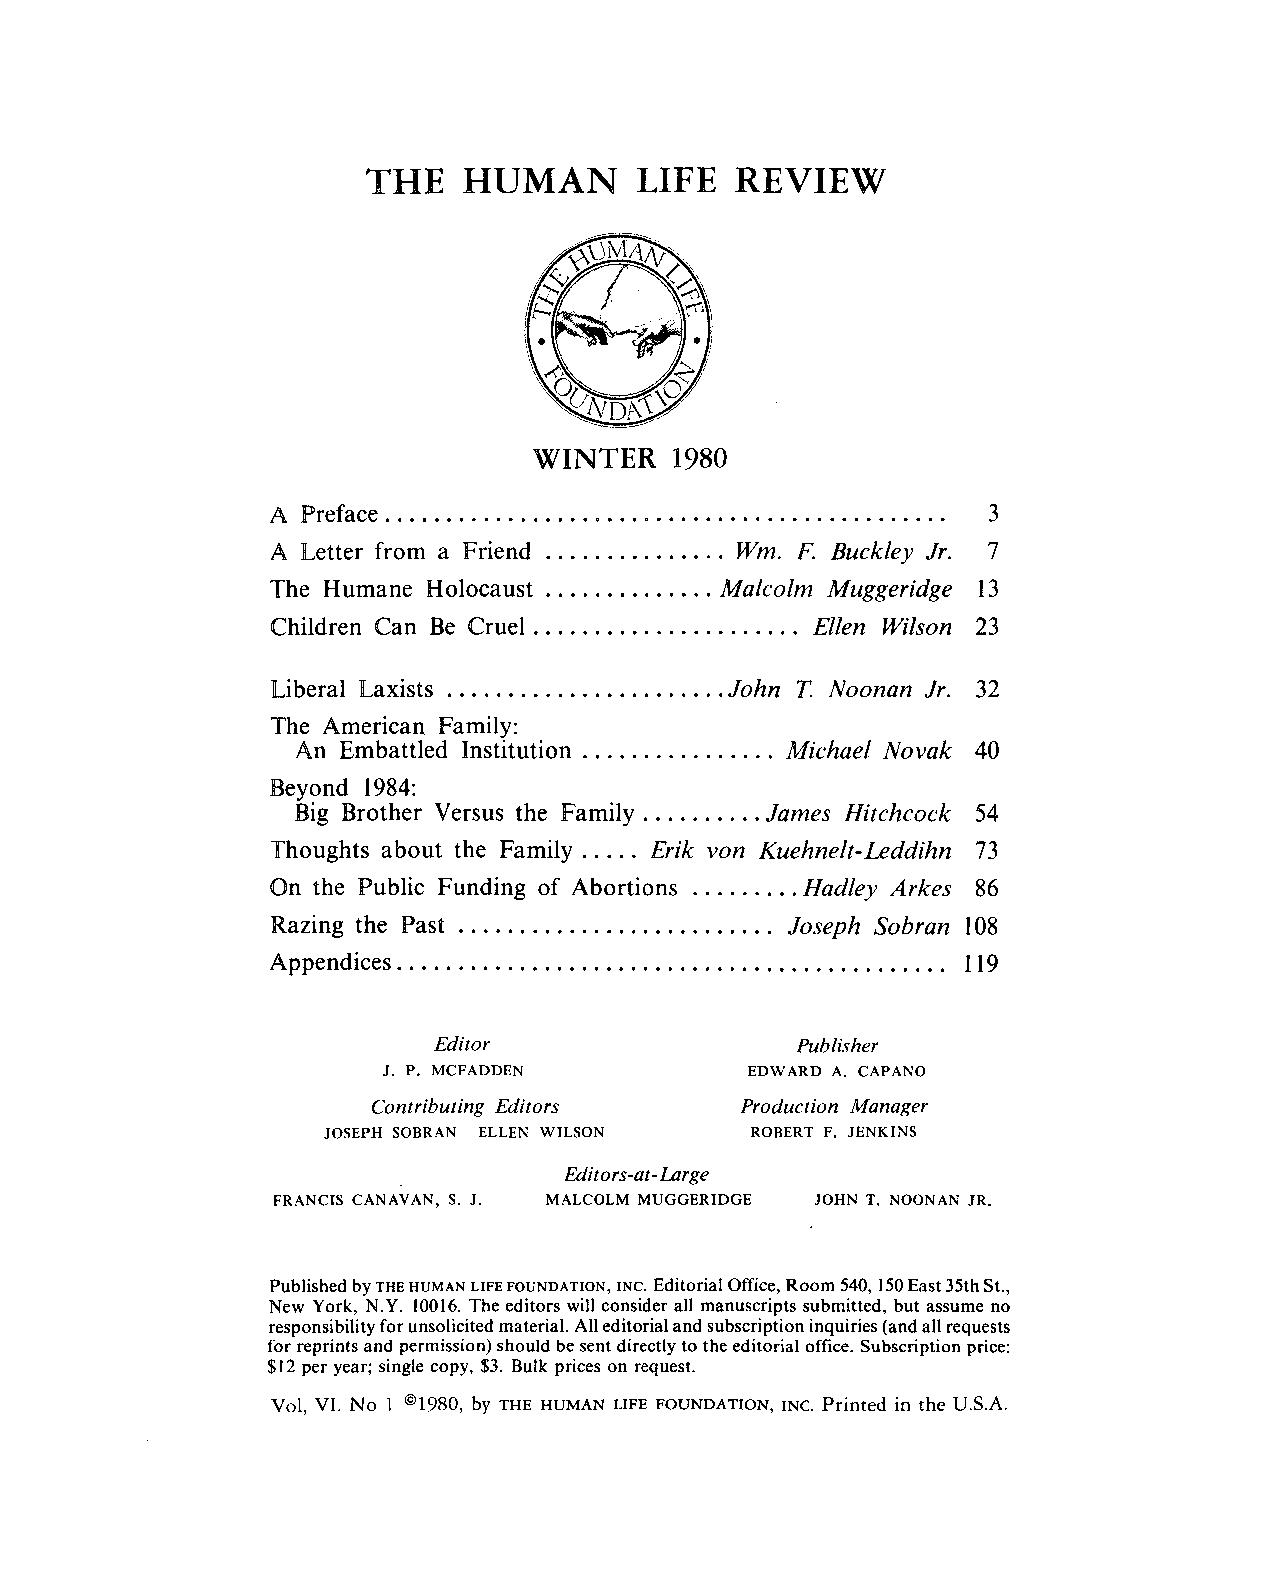 Fatuous Editorial Of Day Prize >> The Human Life Review Winter 1980 The Human Life Review